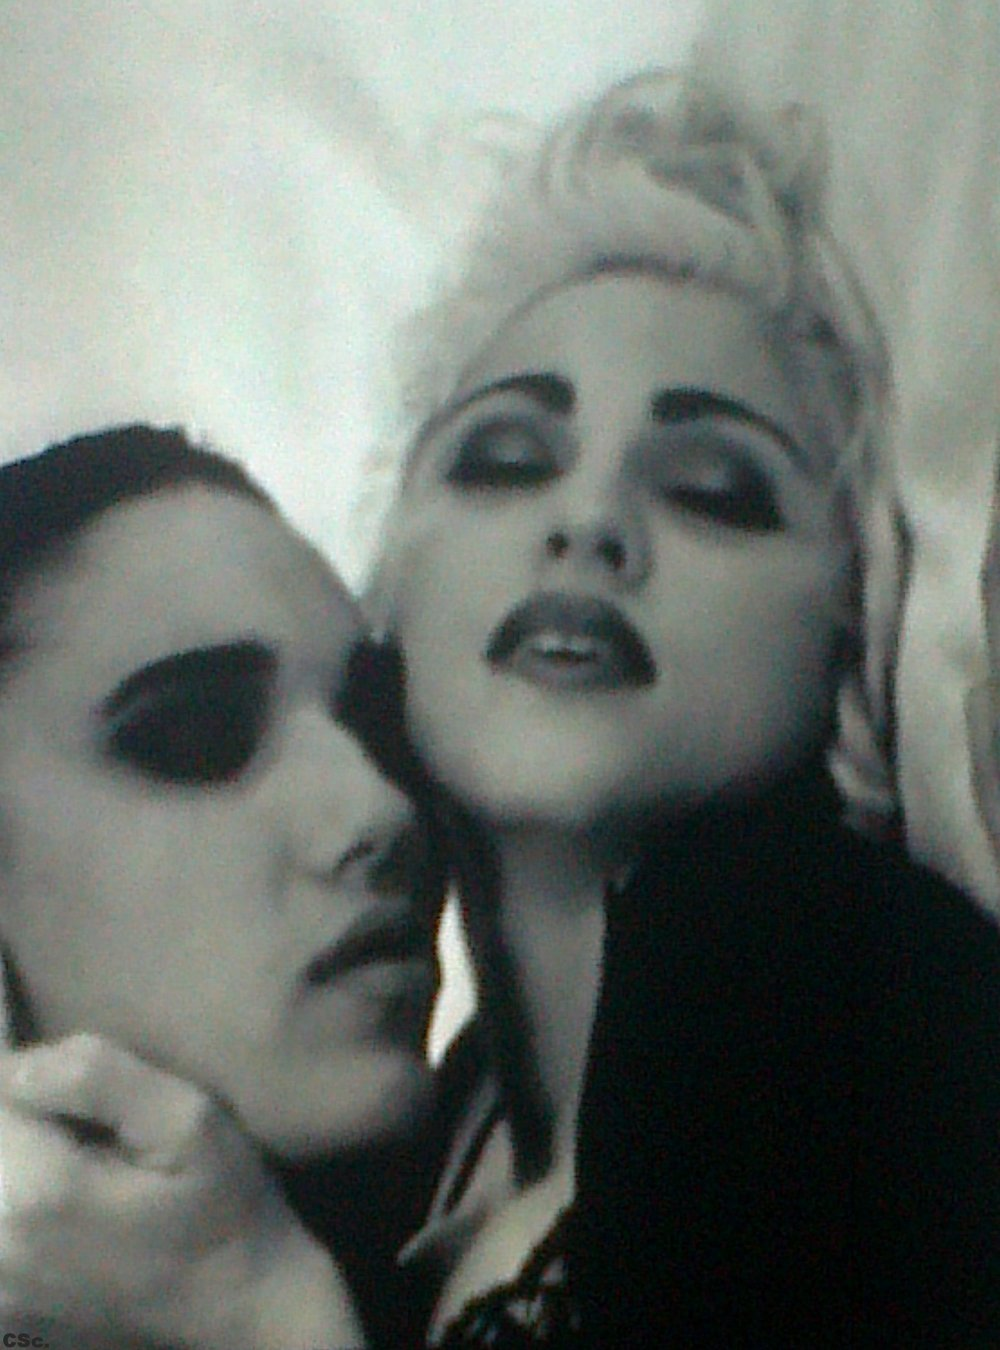 Amanda and Madonna, Justify my Love, 1993